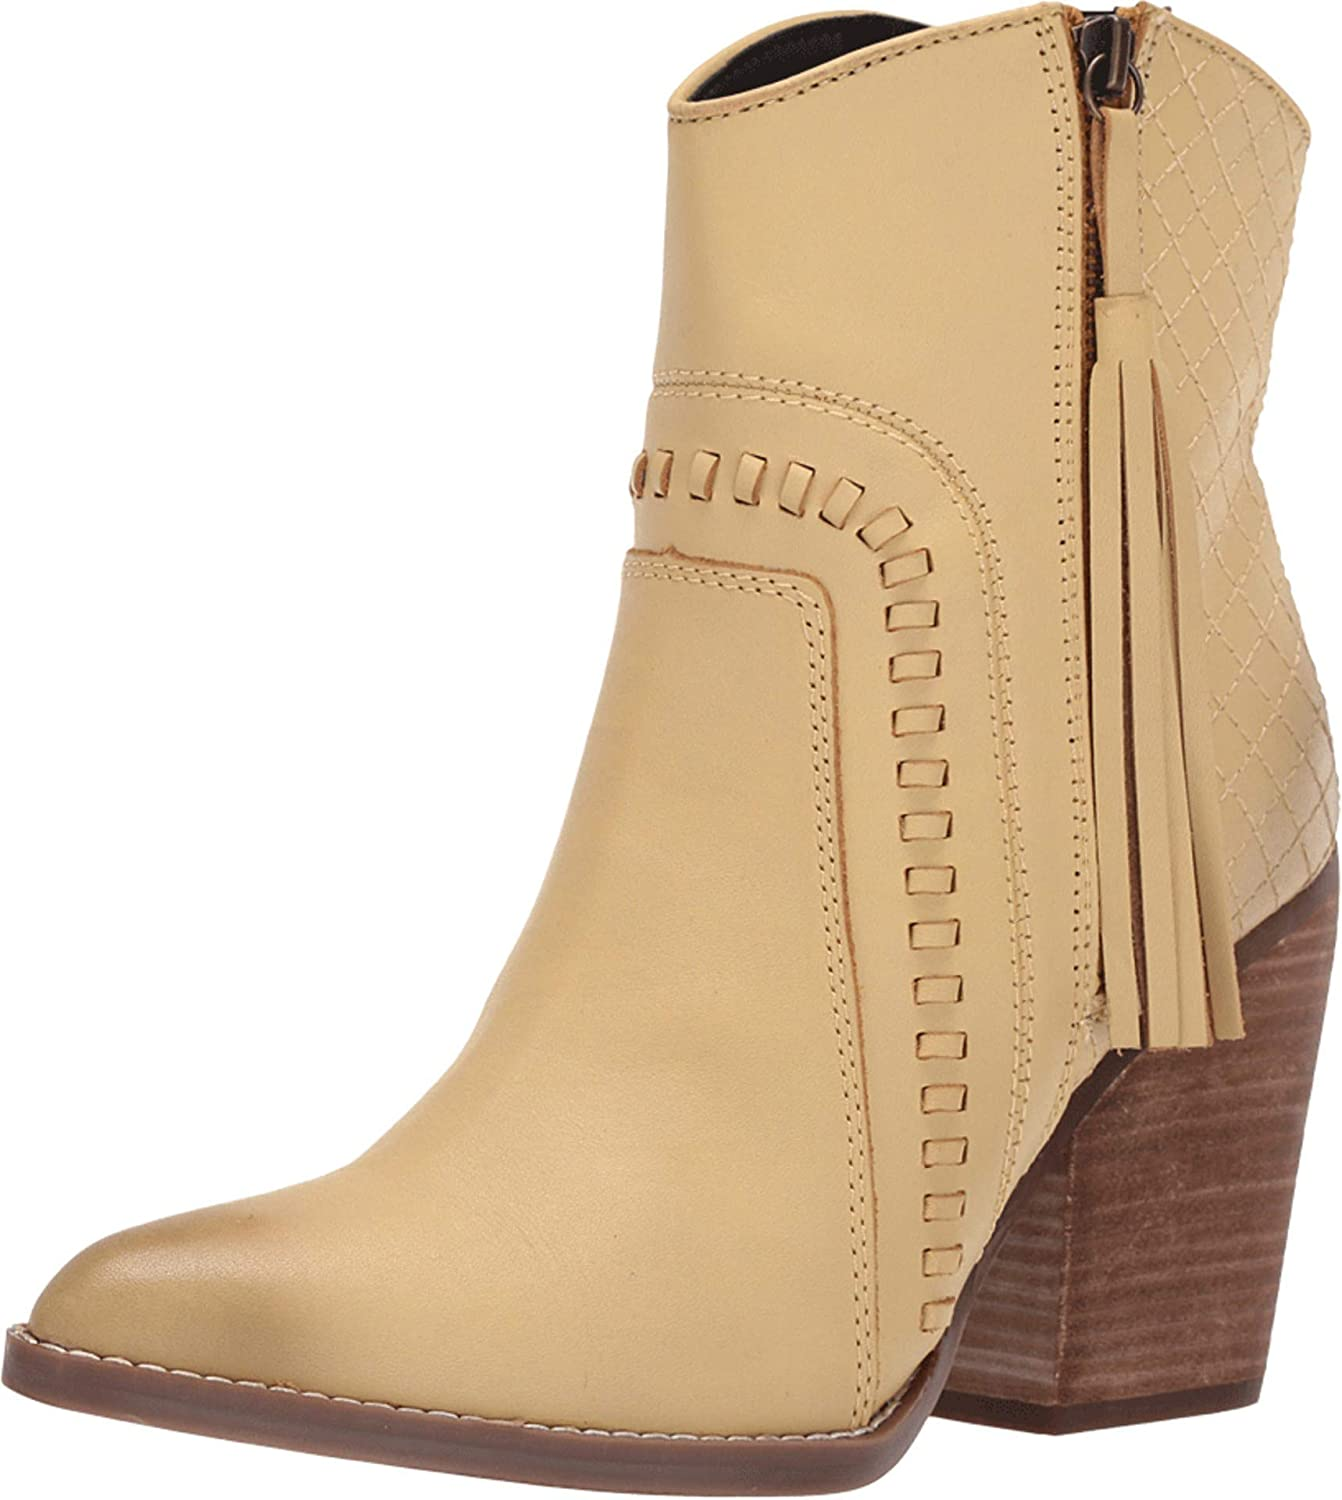 Dingo Womens Dream low-pricing Booties Casual Mid White - Off Don't miss the campaign Heel 2-3